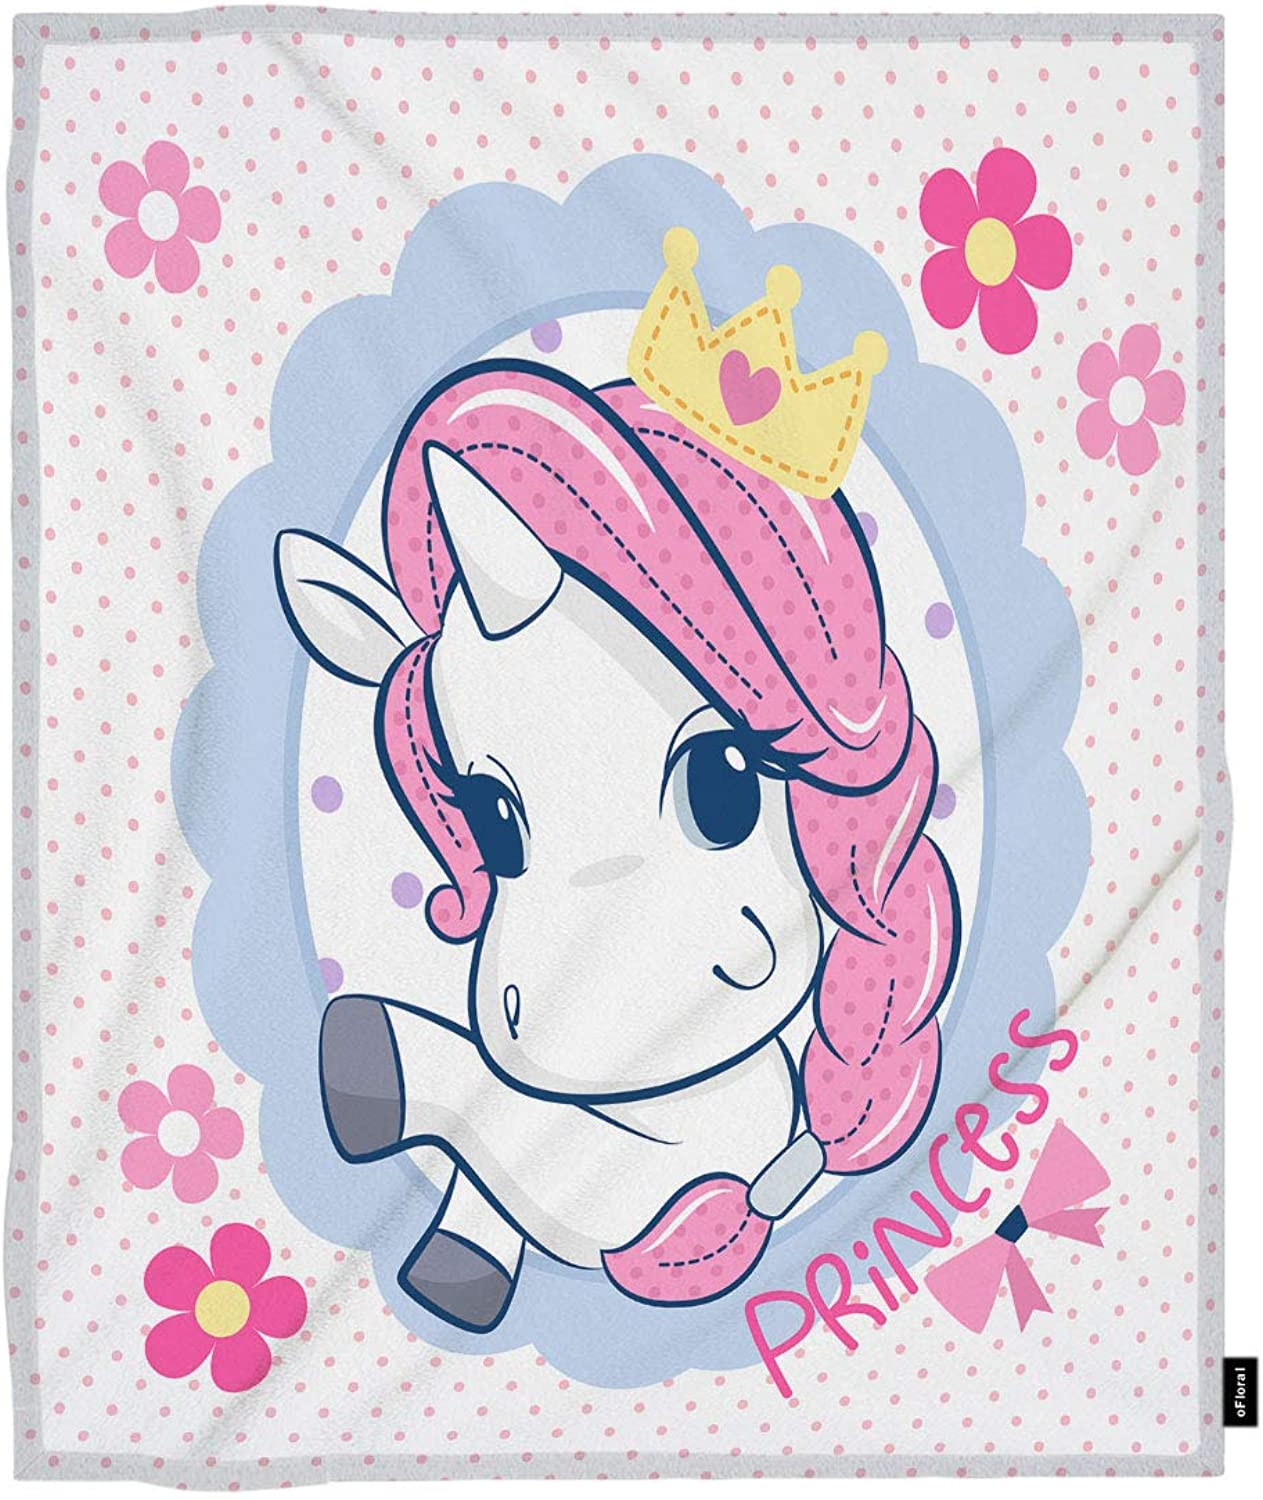 OFloral Unicorn Throw Blanket Princess Unicorn Girl Fairytale Horse Flowers Decorative Soft Warm Cozy Blankets Home Decor for Bed Chair Sofa Couch 50x60 Inch